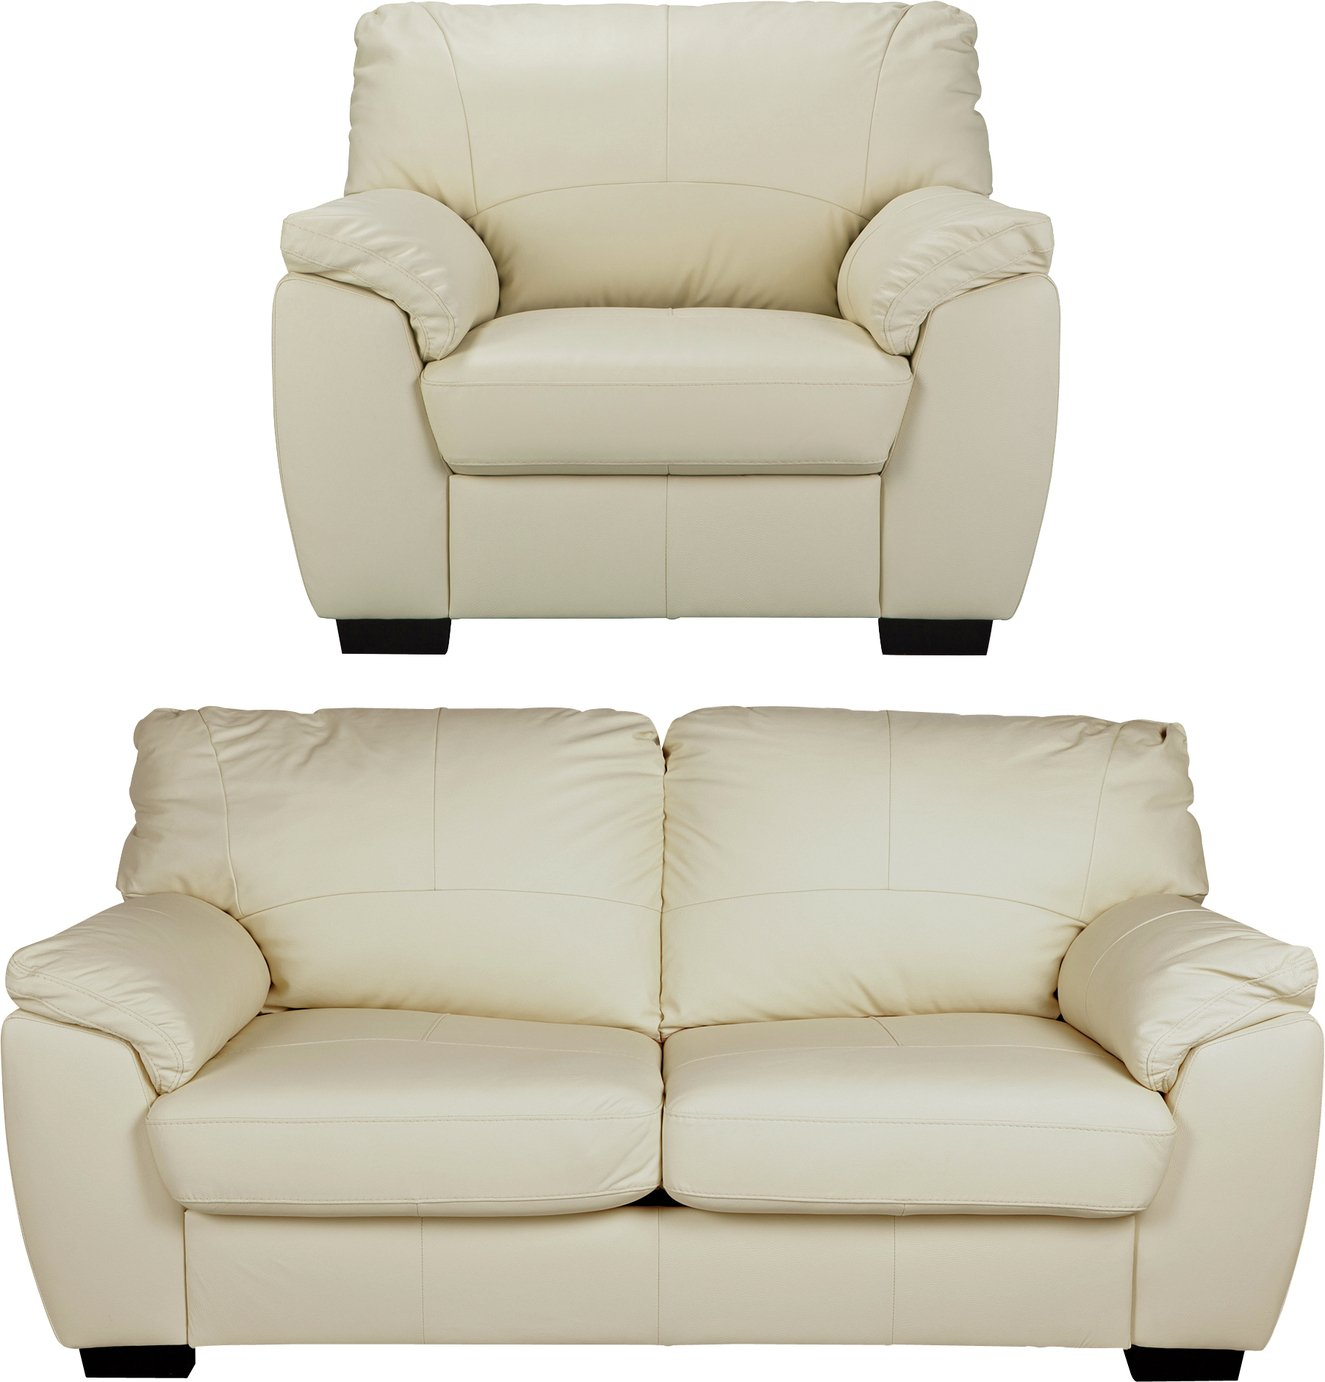 Argos Home Milano Leather Chair and 3 Seater Sofa - Ivory